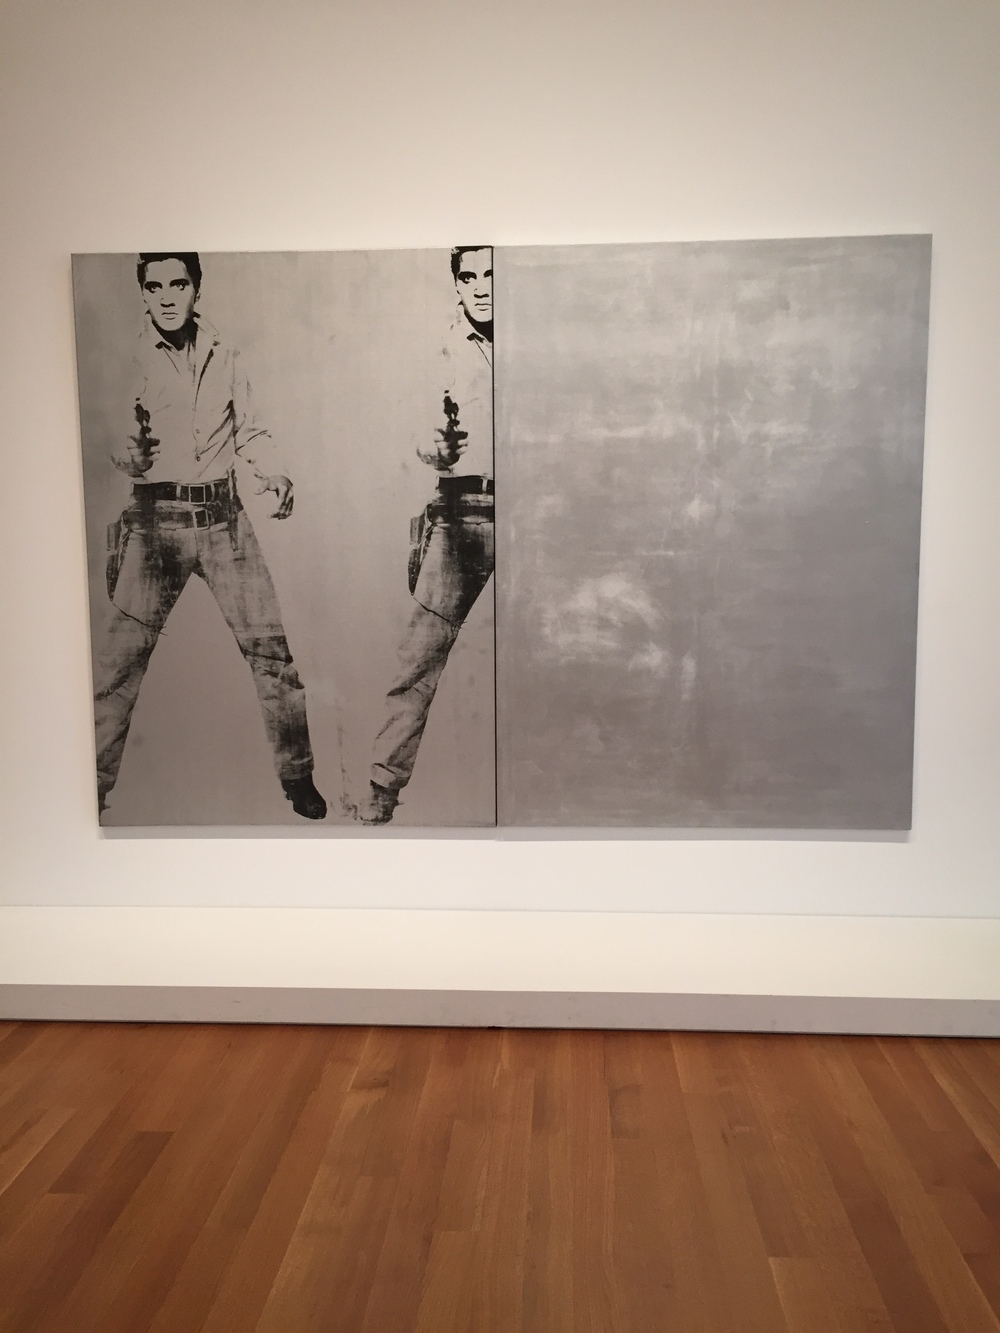 Double Elvis by Andy Warhol